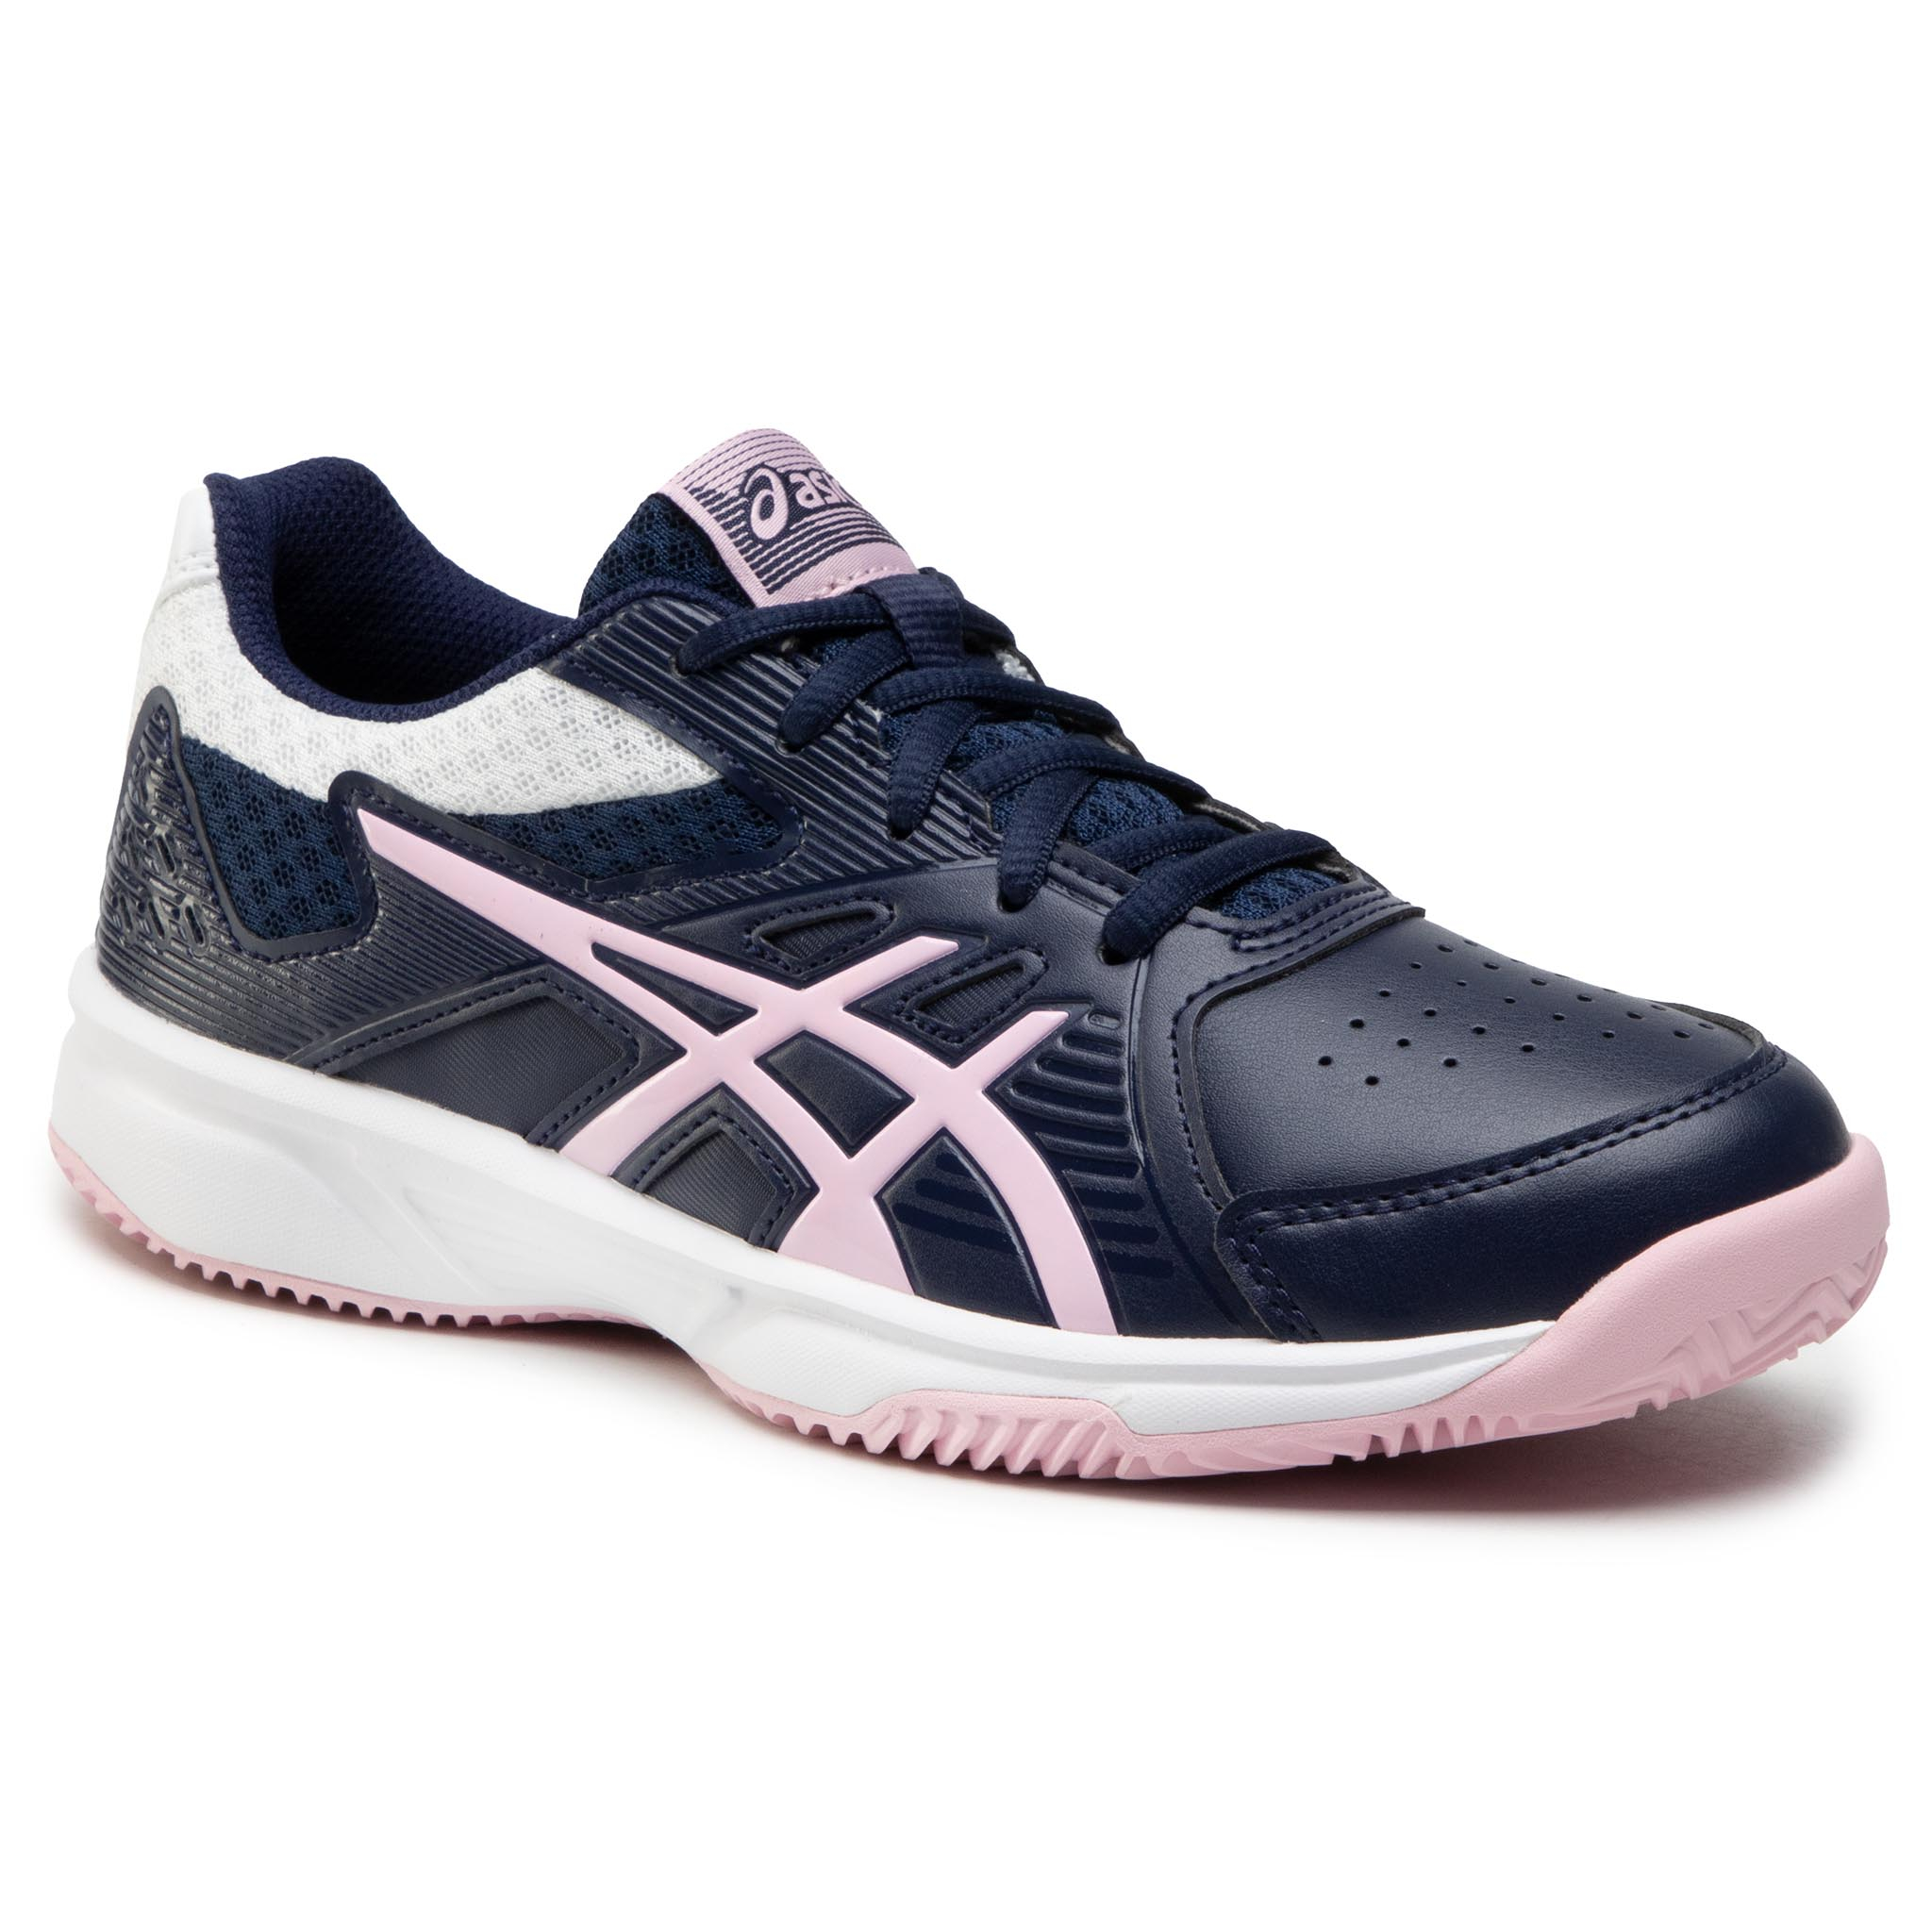 Batai ASICS - Court Slide Clay 1042A031 Peacoat/Cotton Candy 409